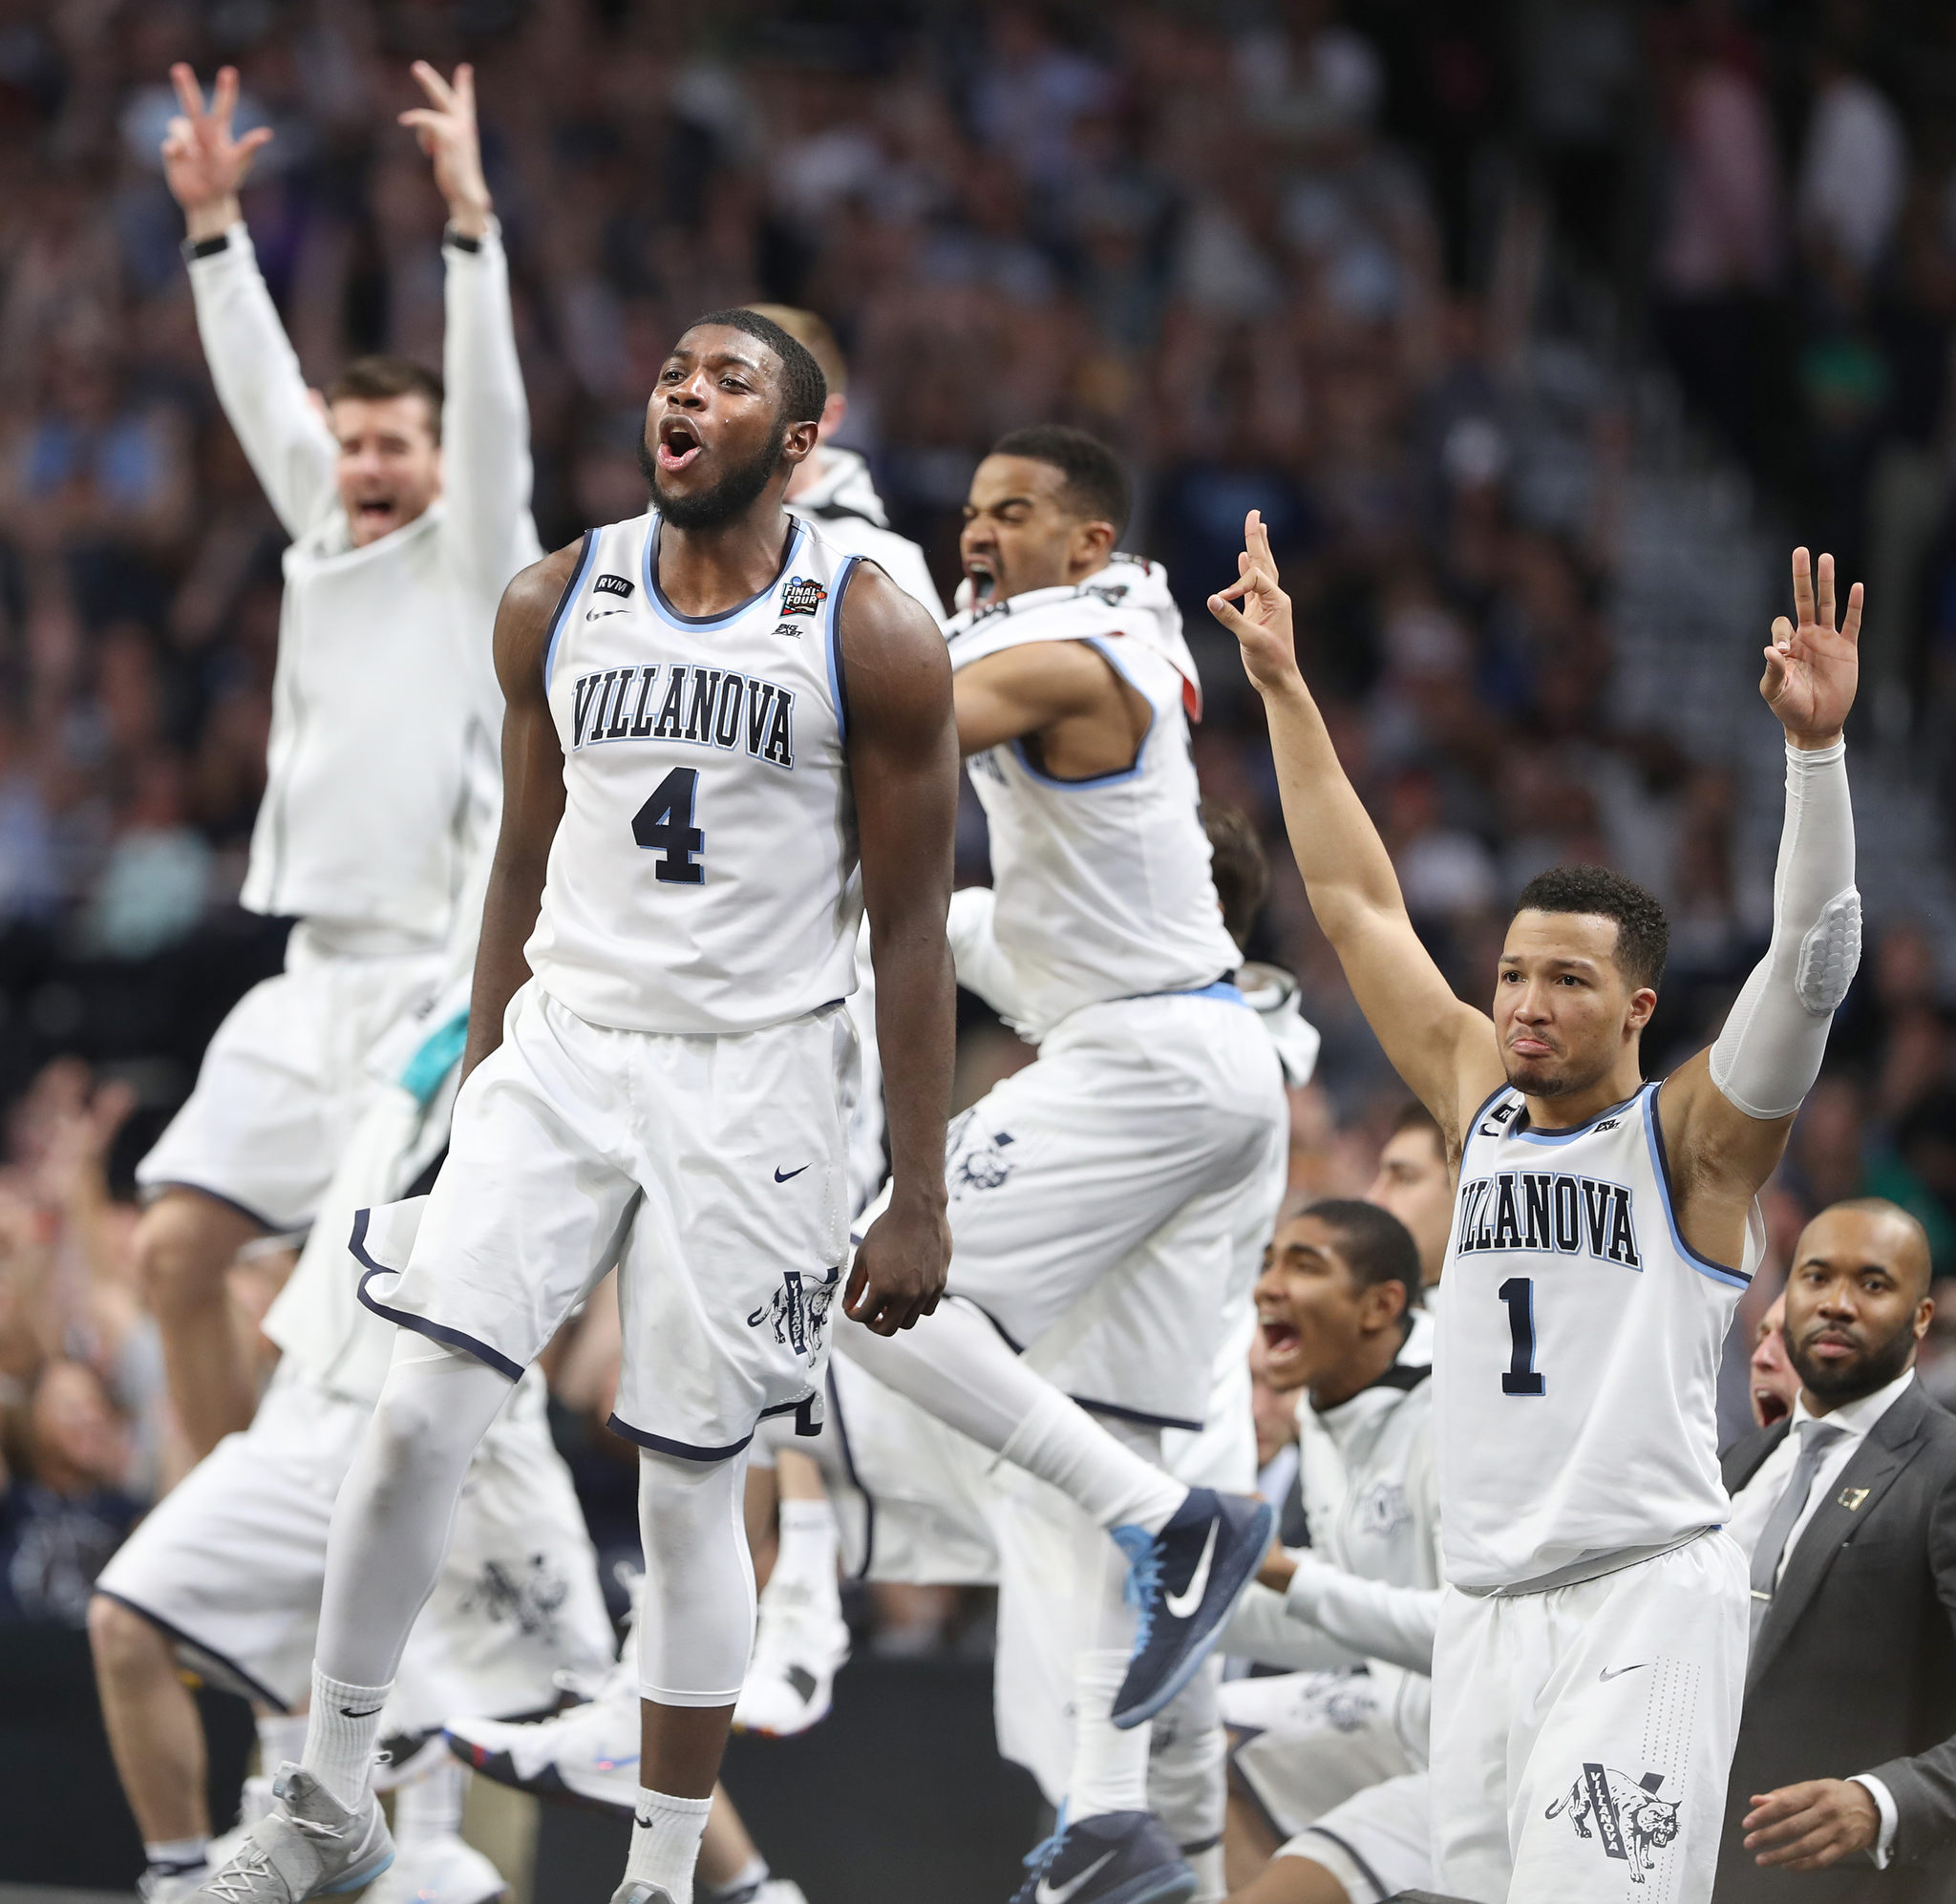 Eric Paschall, center, and Jalen Brunson, right, and the Villanova bench celebrate after a Donte DiVincenzo 3-pointer against Michigan during the 2nd half of the National Championship game of the NCAA Tournament at the Alamodome on April 2, 2018.